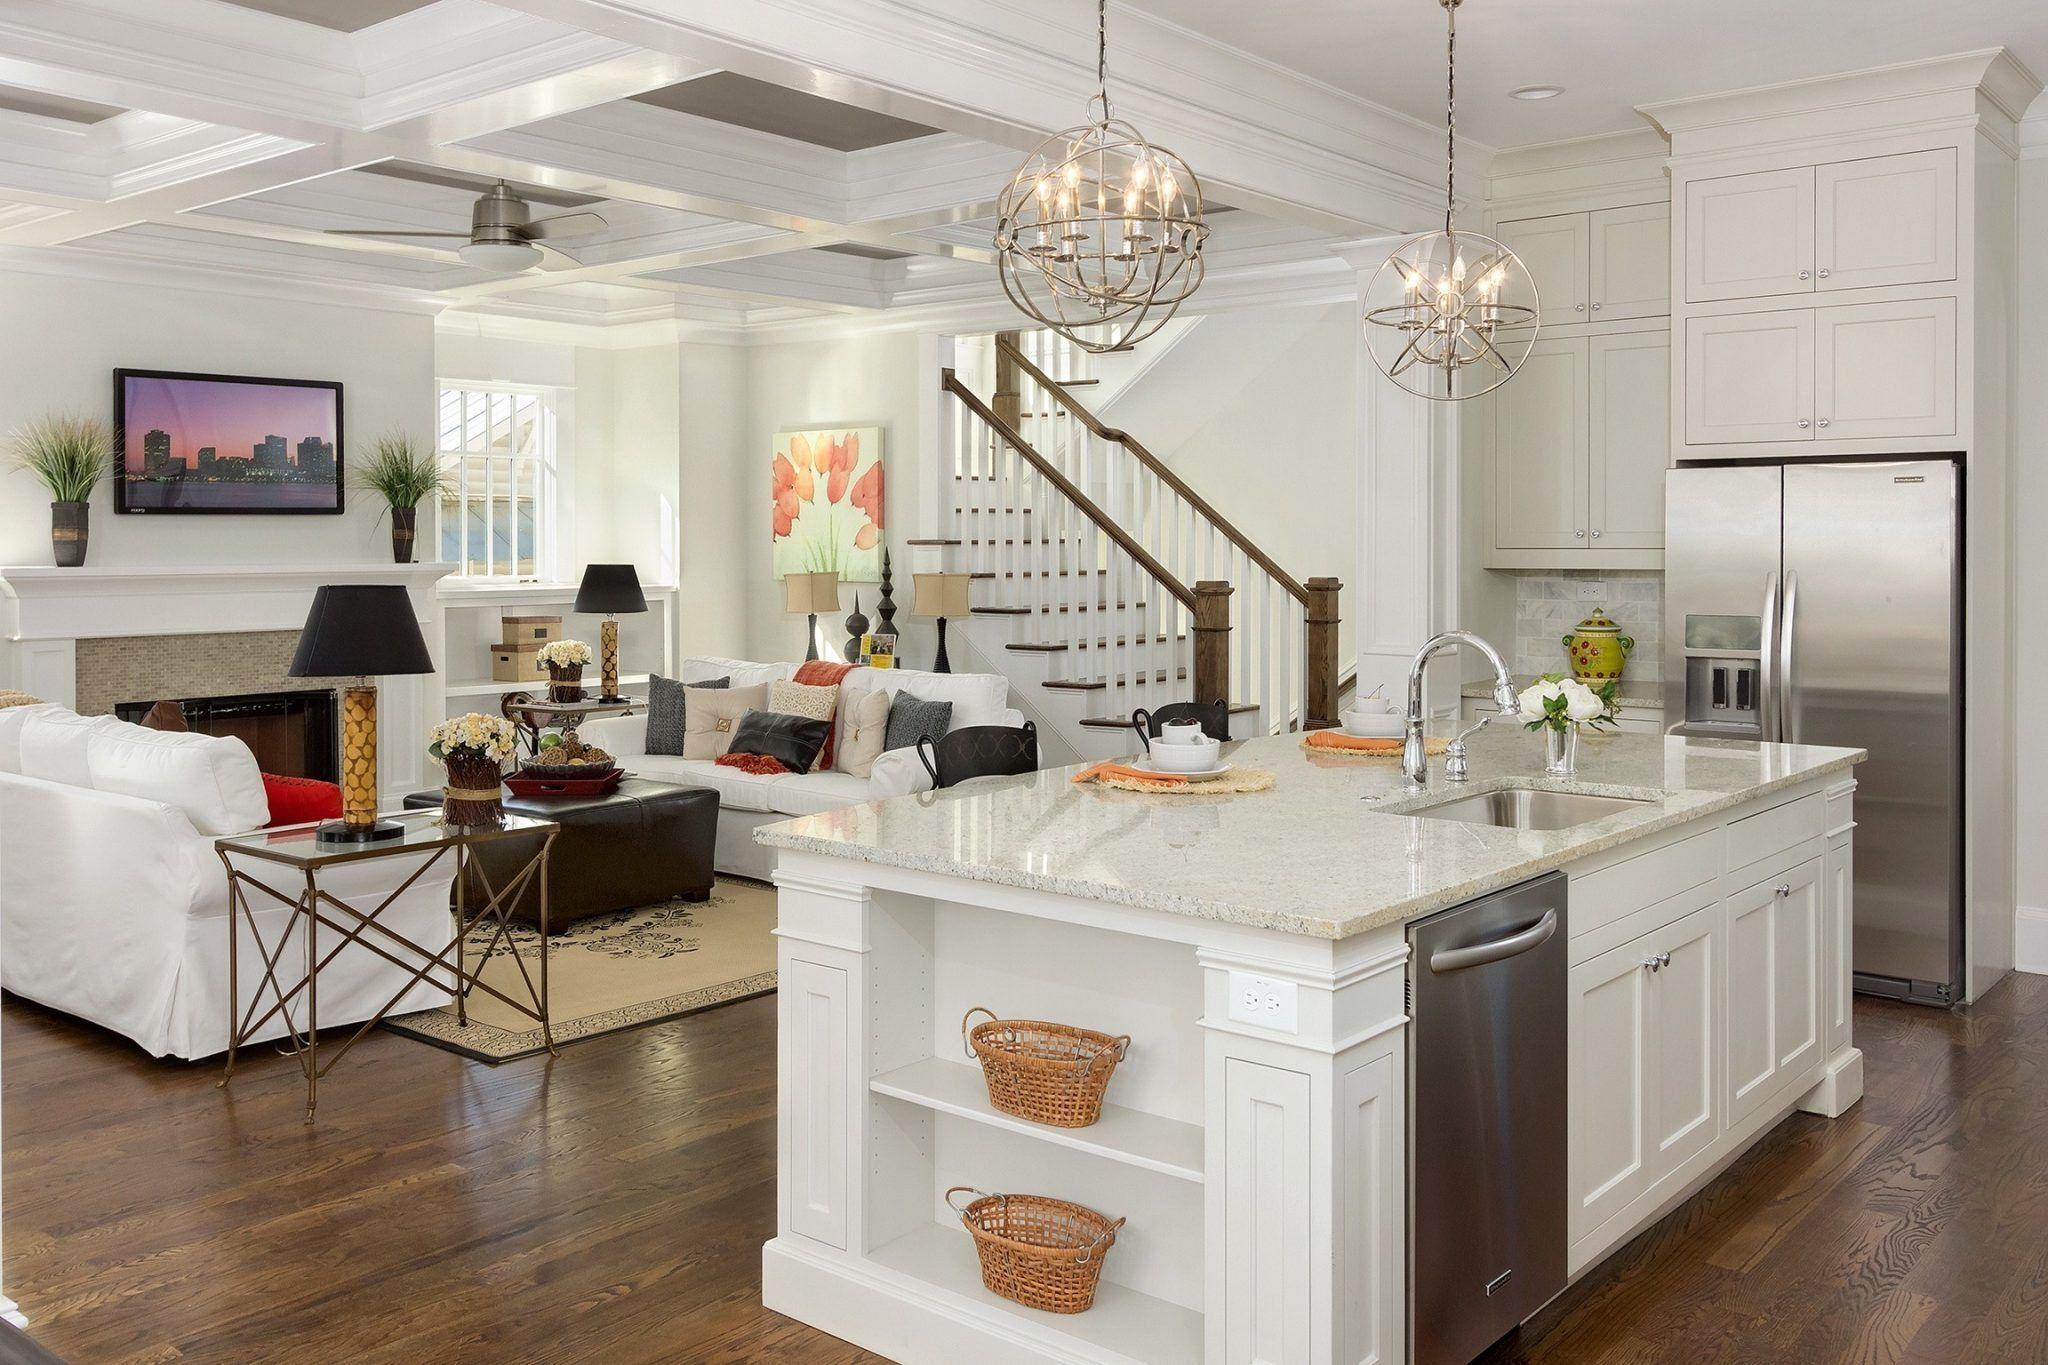 chandelier over island - Google Search | Atherton | Pinterest ...